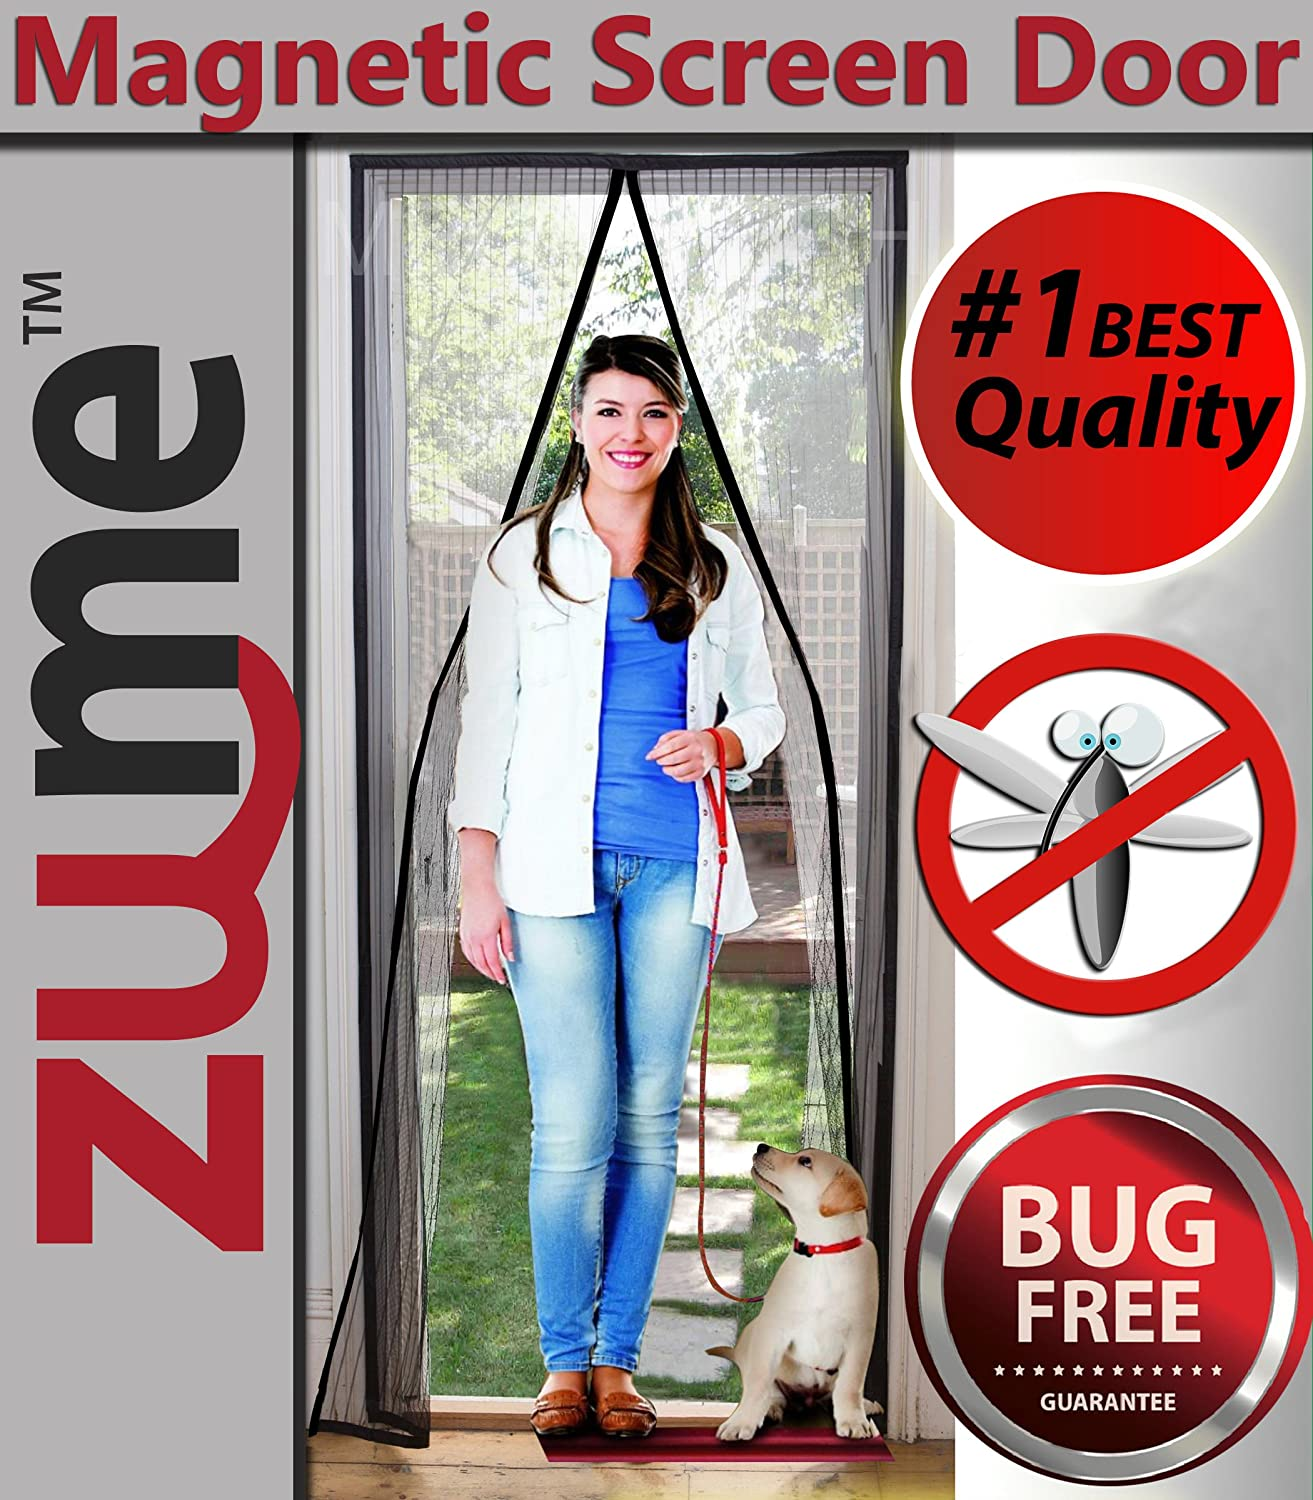 Magnetic screen door highest quality easy to install door screens magnetic screen door highest quality easy to install door screens with magnets size 40 x 83pet friendly full frame velcro premium mesh curtain keep vtopaller Image collections